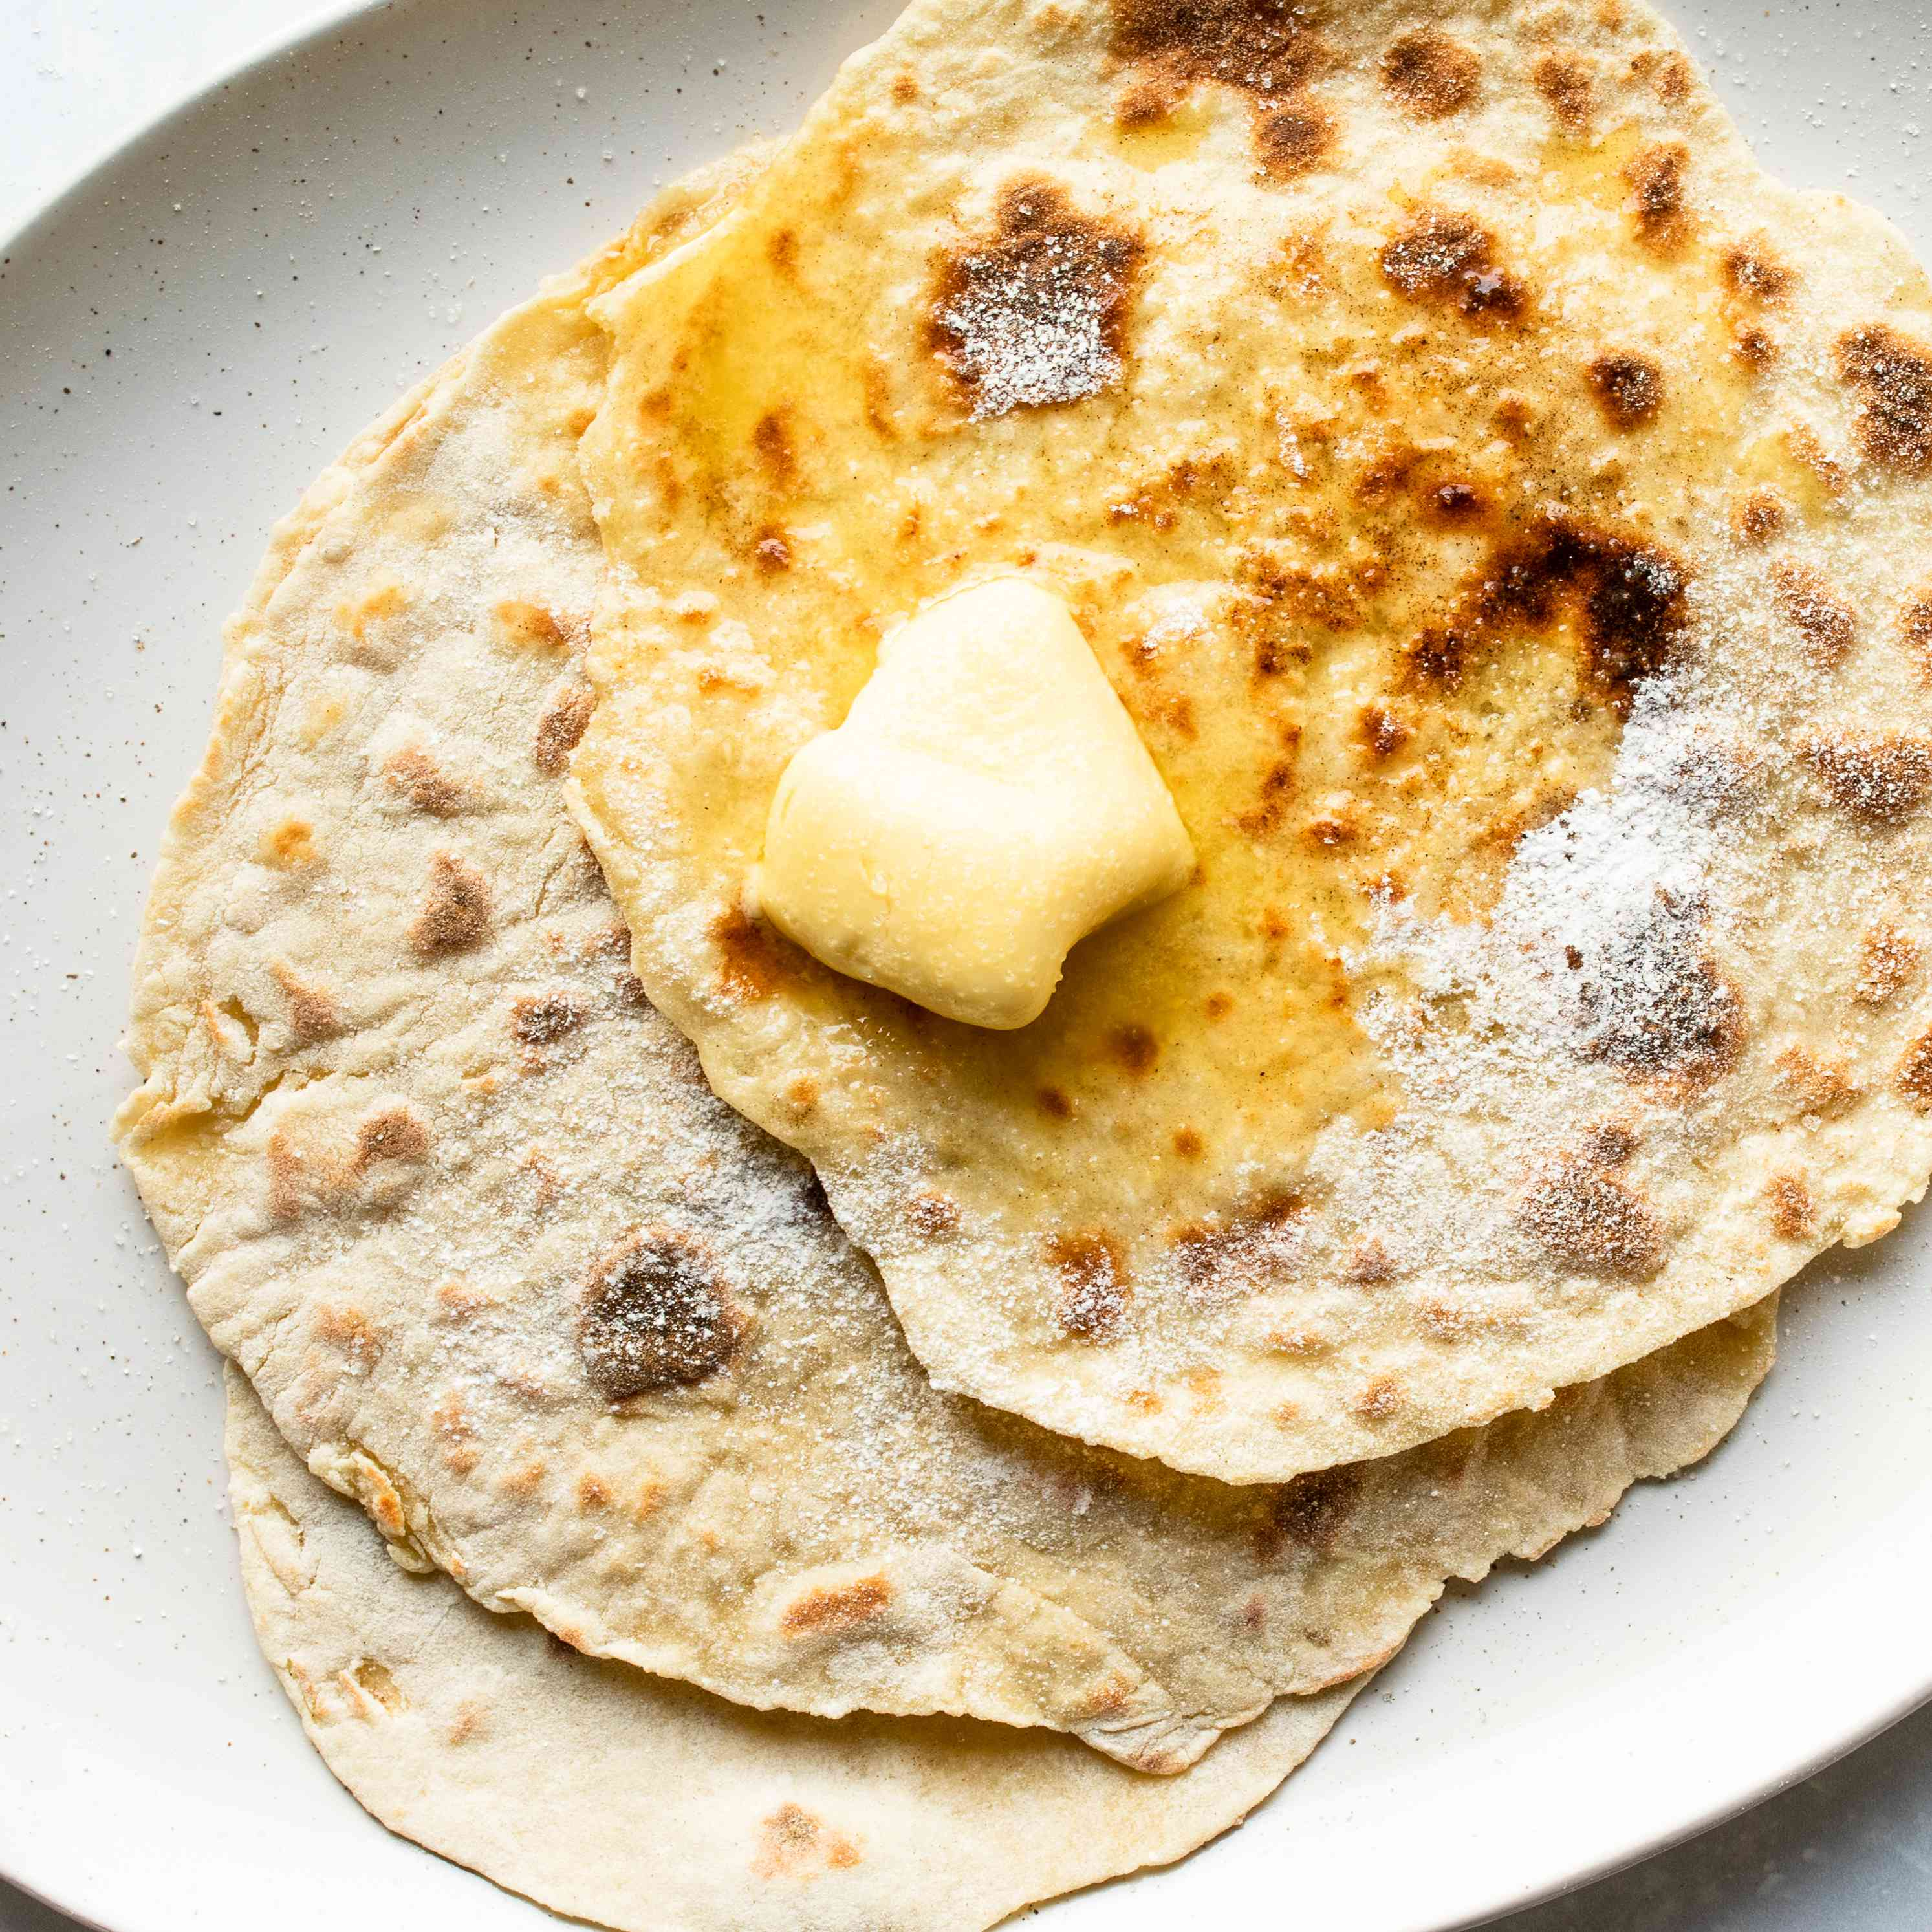 Basic Norwegian Lefse Potato Bread Recipe